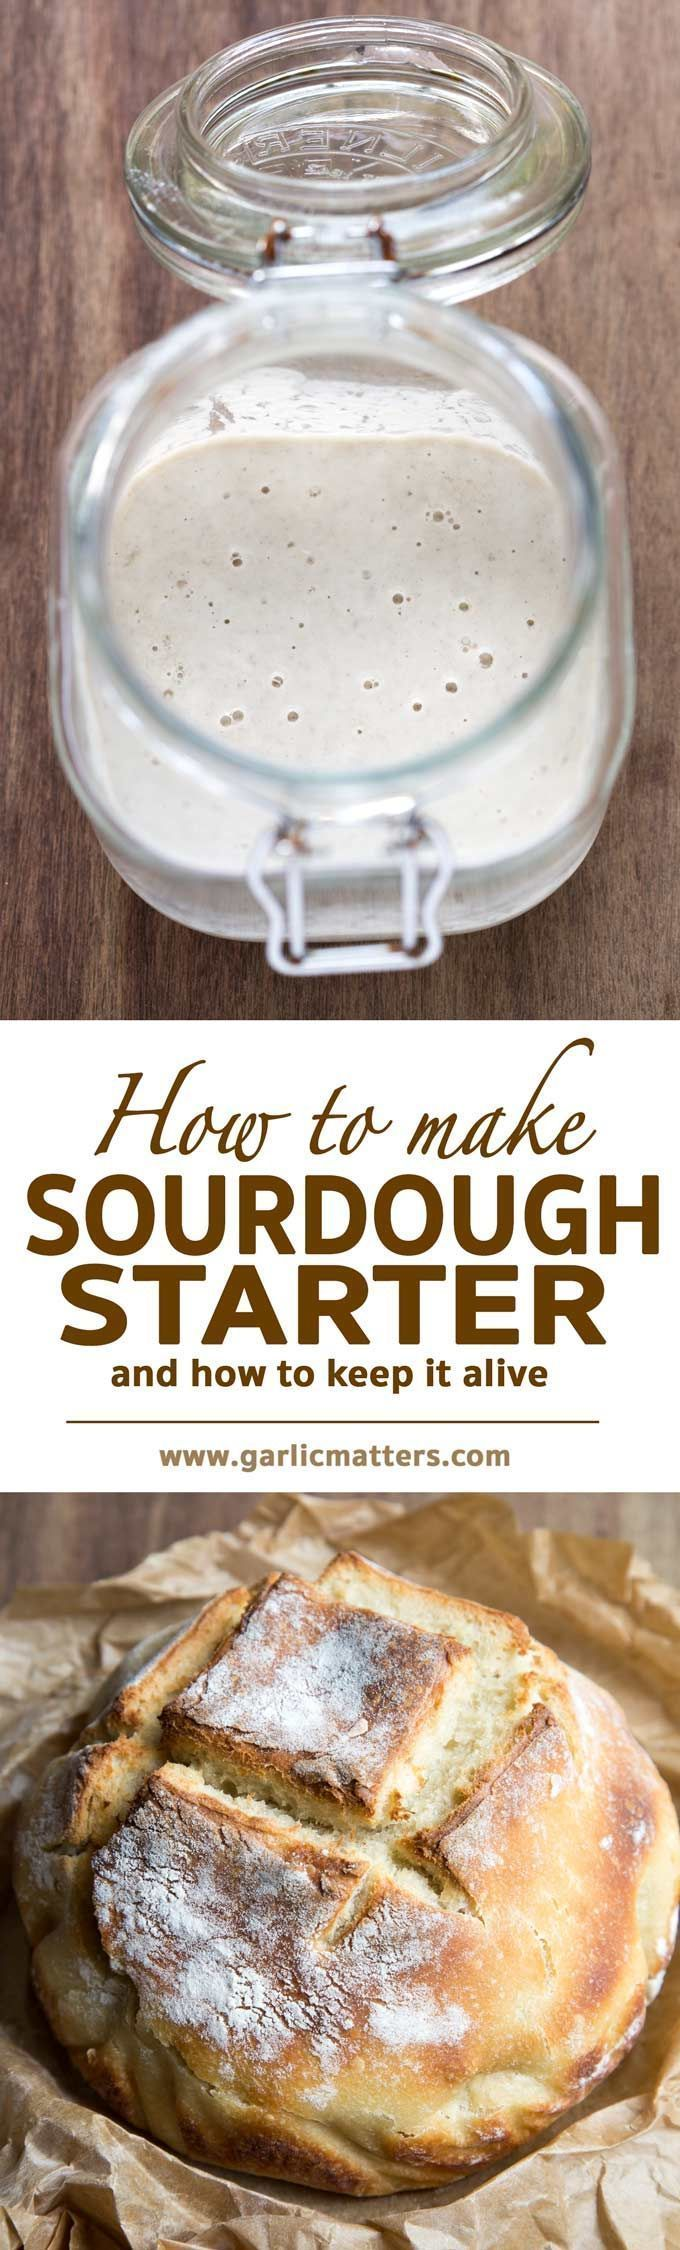 Learn how to make best sourdough starter with wild yeast for the most delicious sourdough bread. Step by step instructions with pictures, problem solving and full guidance. It is easier than you think! http://PERXFOOD.COM